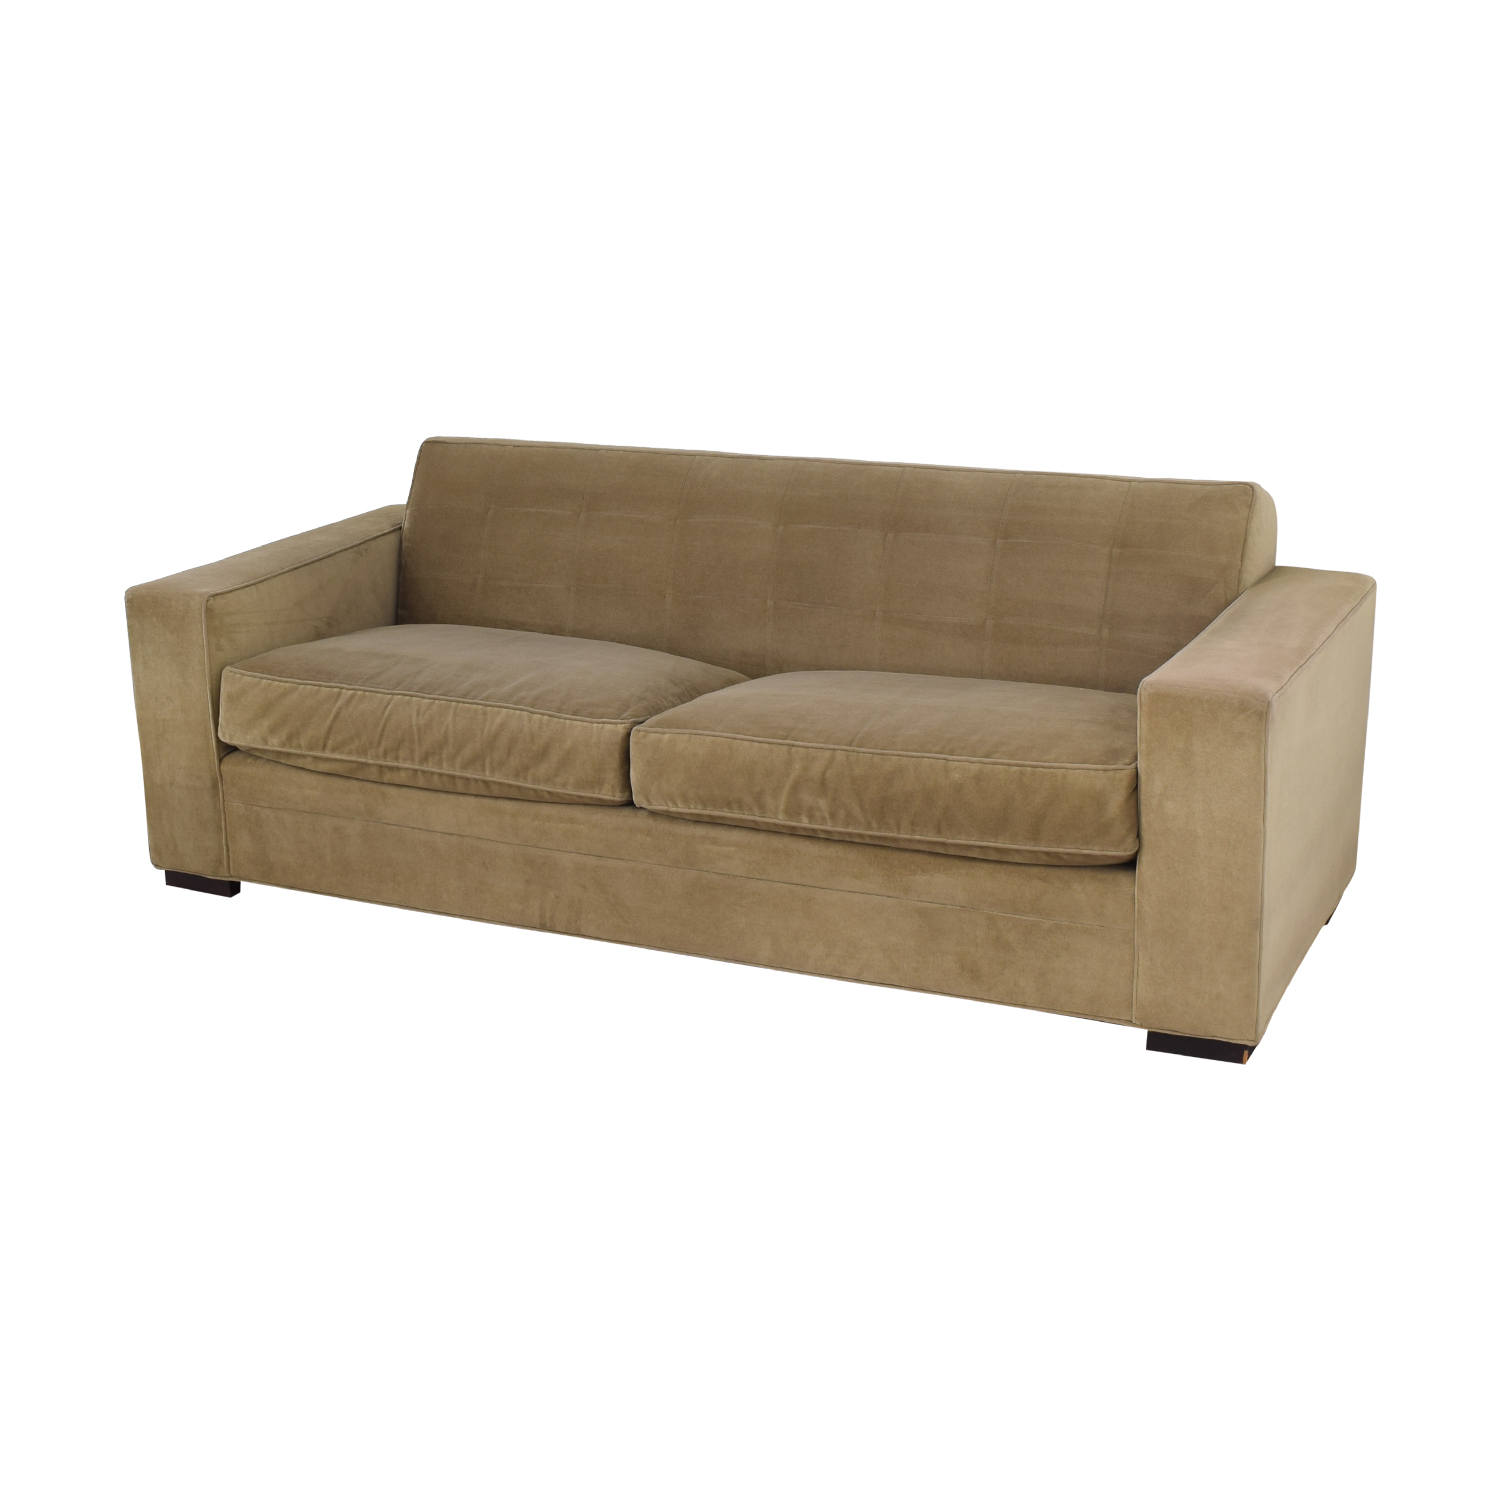 Mitchell Gold + Bob Williams Mitchell Gold + Bob Williams Two Cushion Sofa Sofas